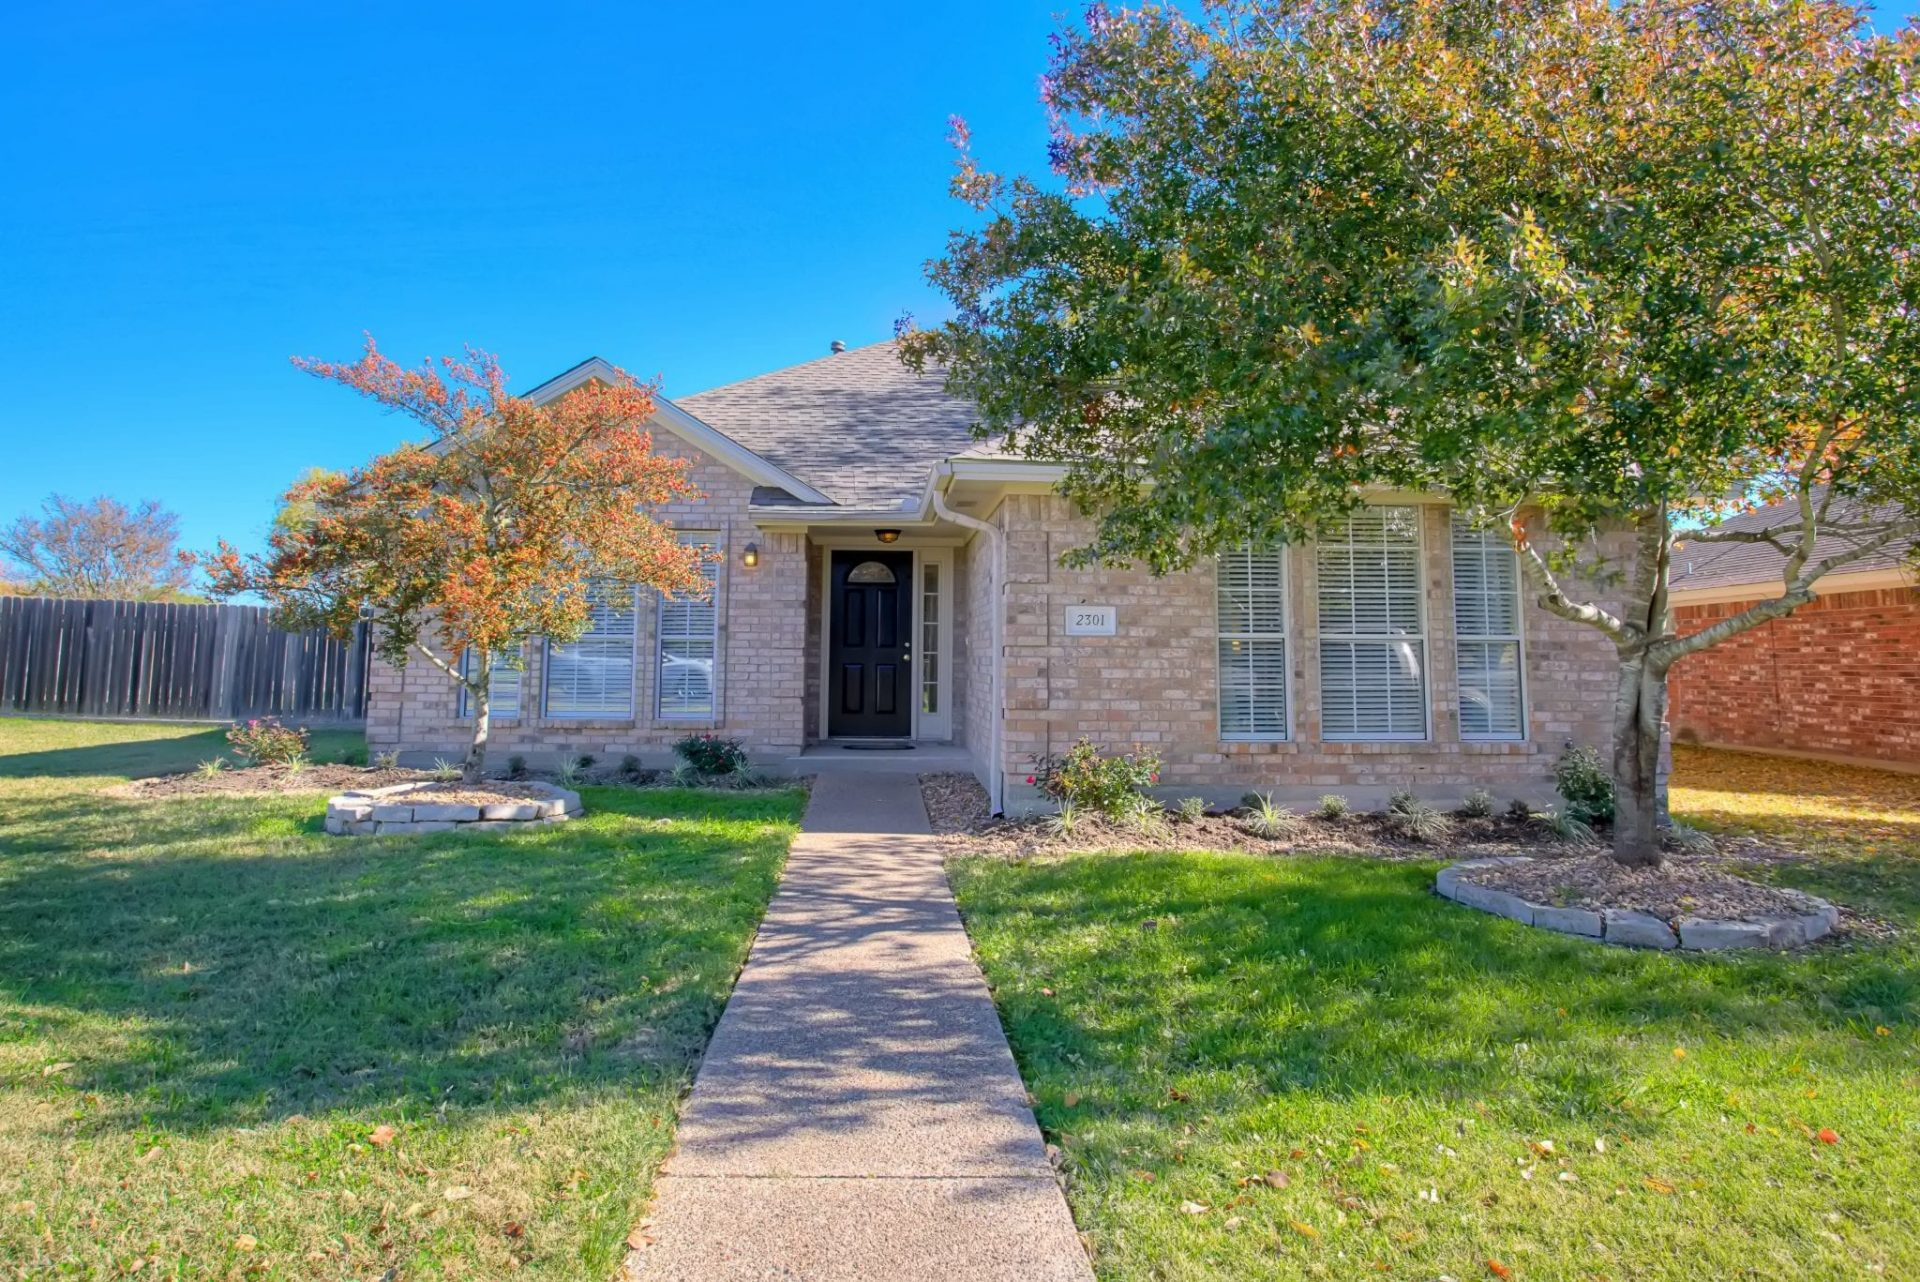 4 Bedroom Houses South Side Aggieland Leasing